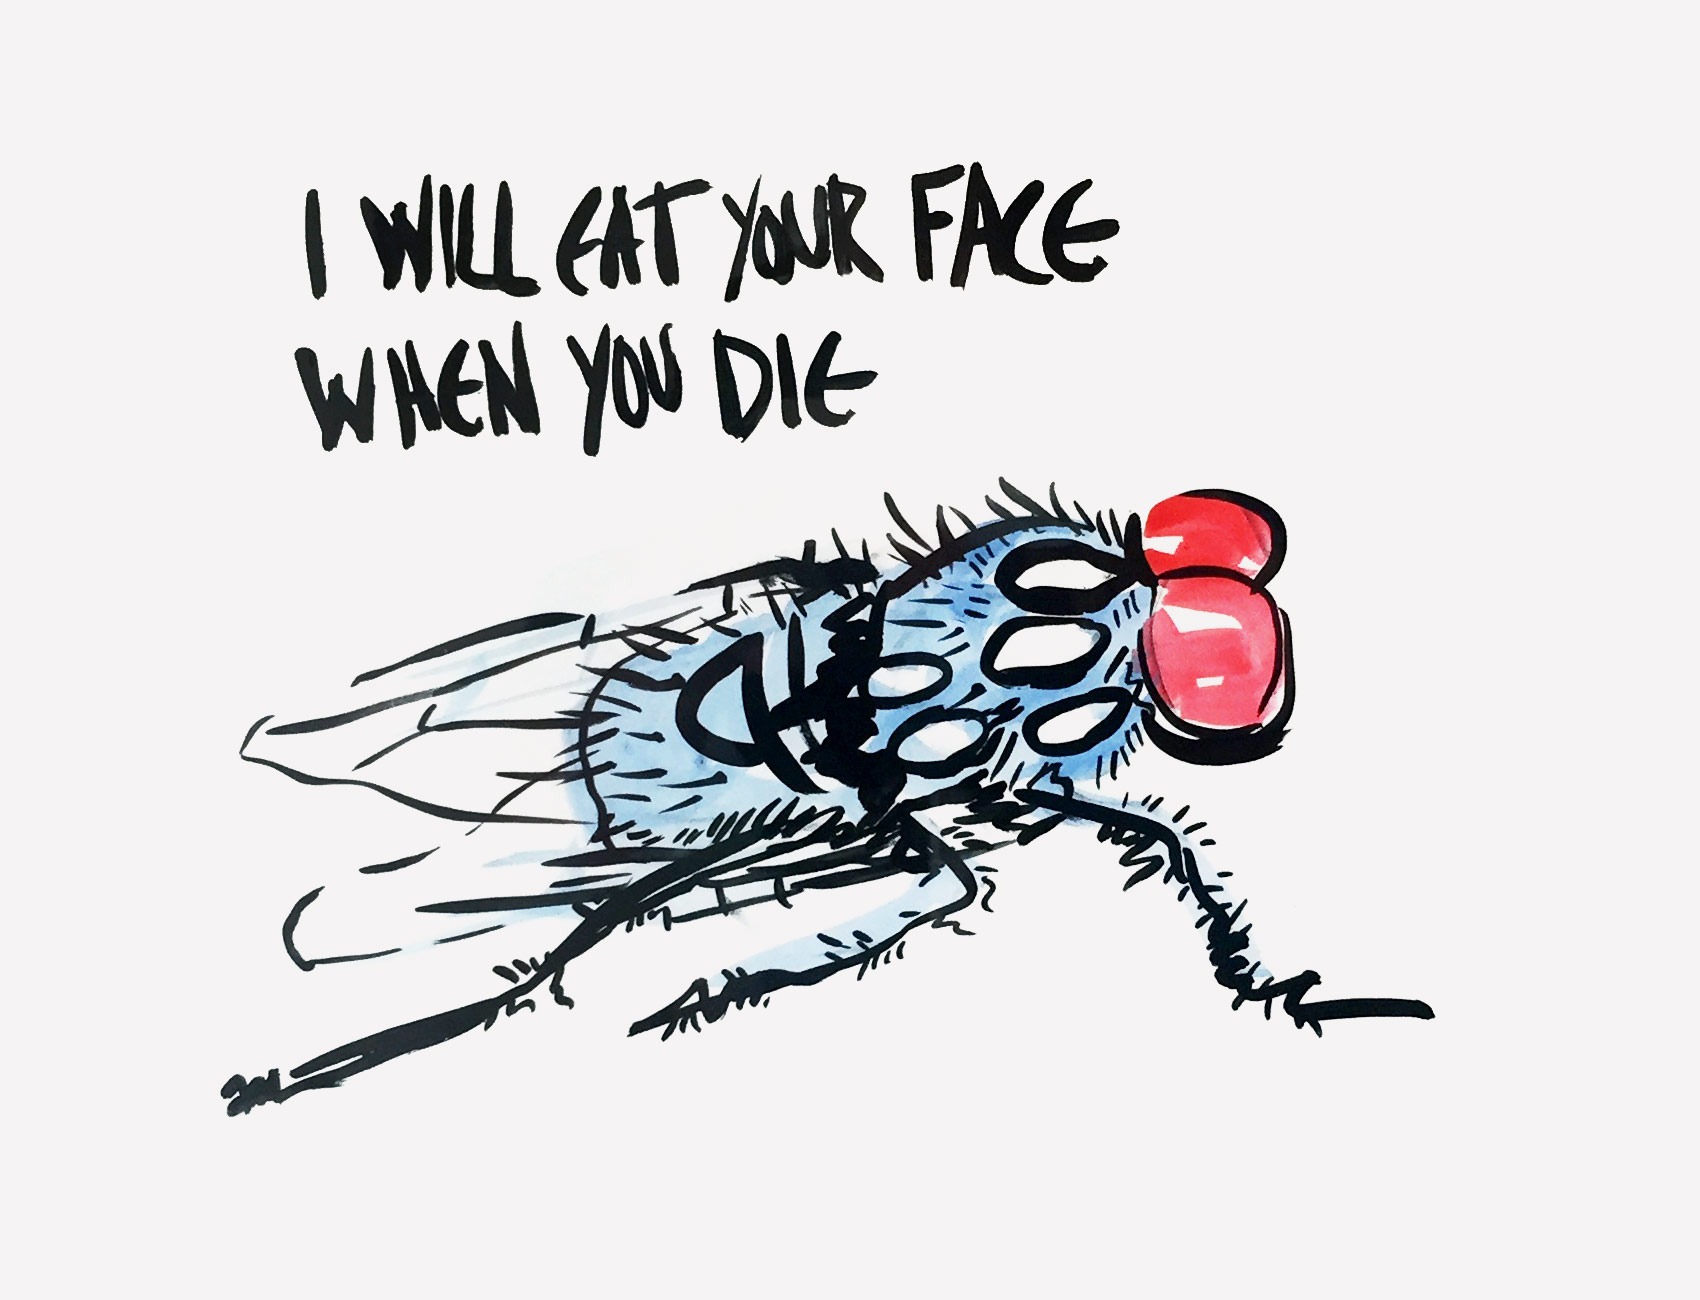 I will eat your face